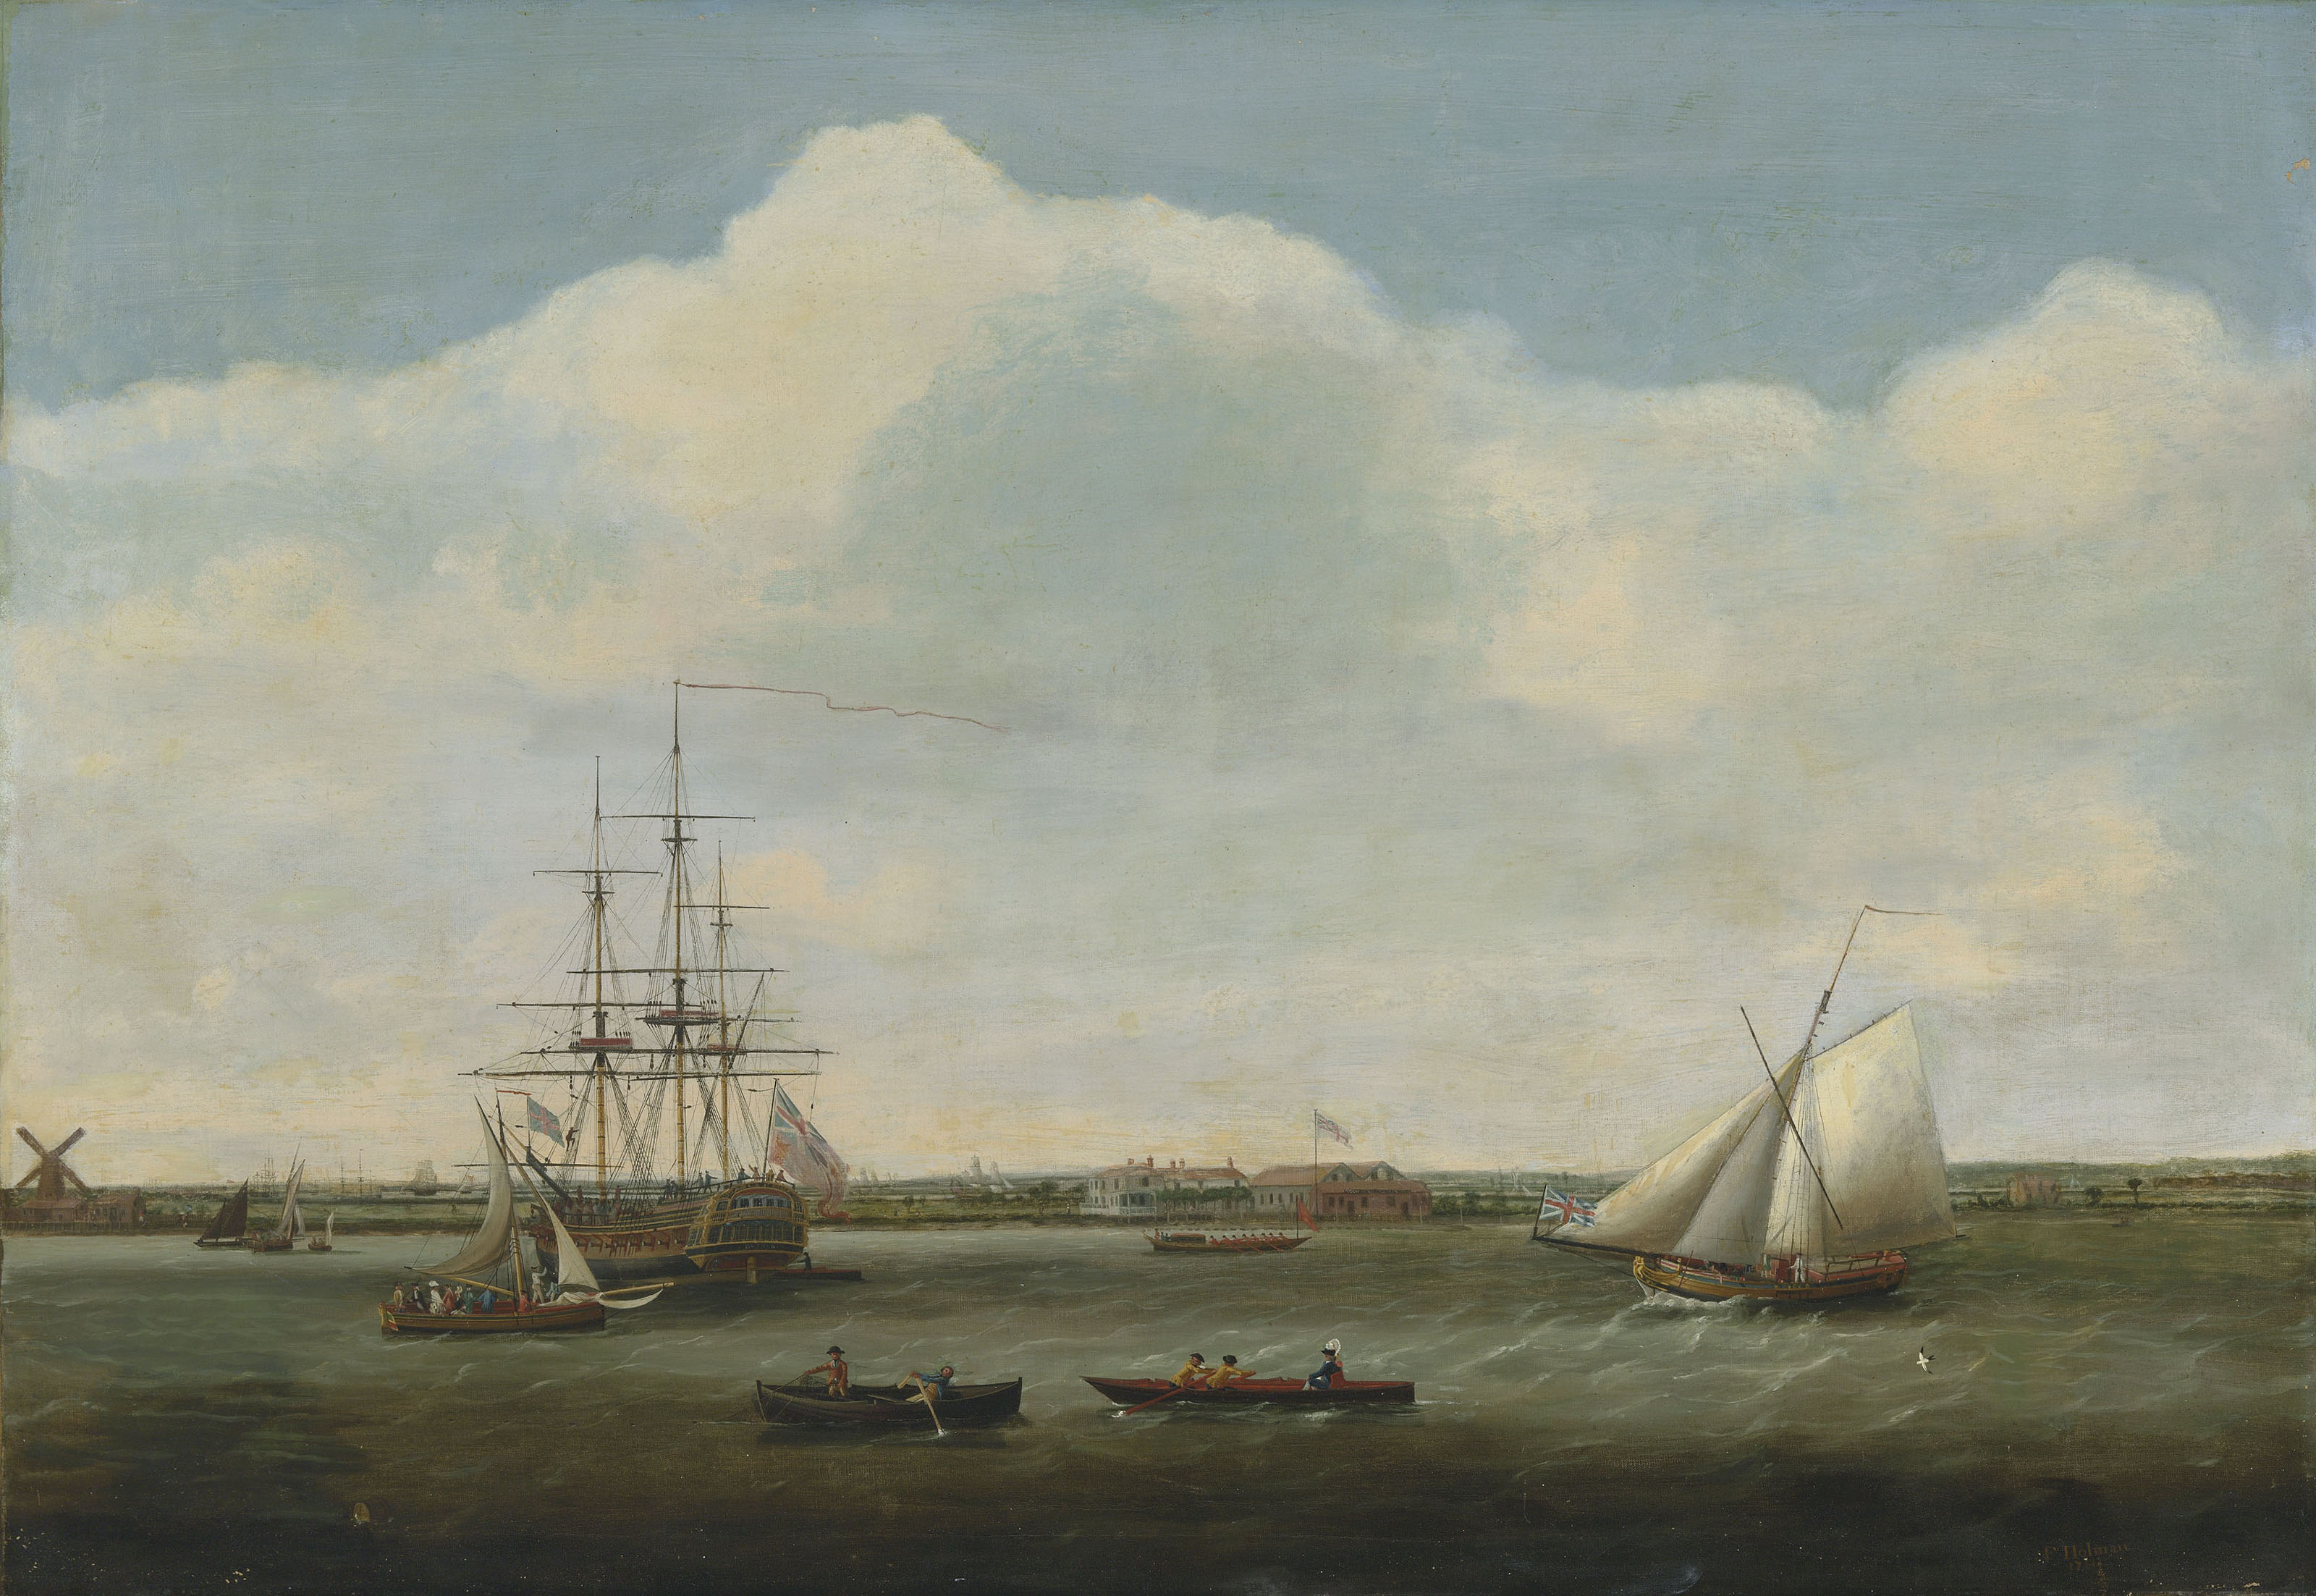 'Ready for Inspection': the brand new East Indiaman Dutton lying in the Thames at Deptford in the autumn of 1781 as her owner, Mr Henry Rice, and his party prepare to board and inspect her in advance of her maiden voyage